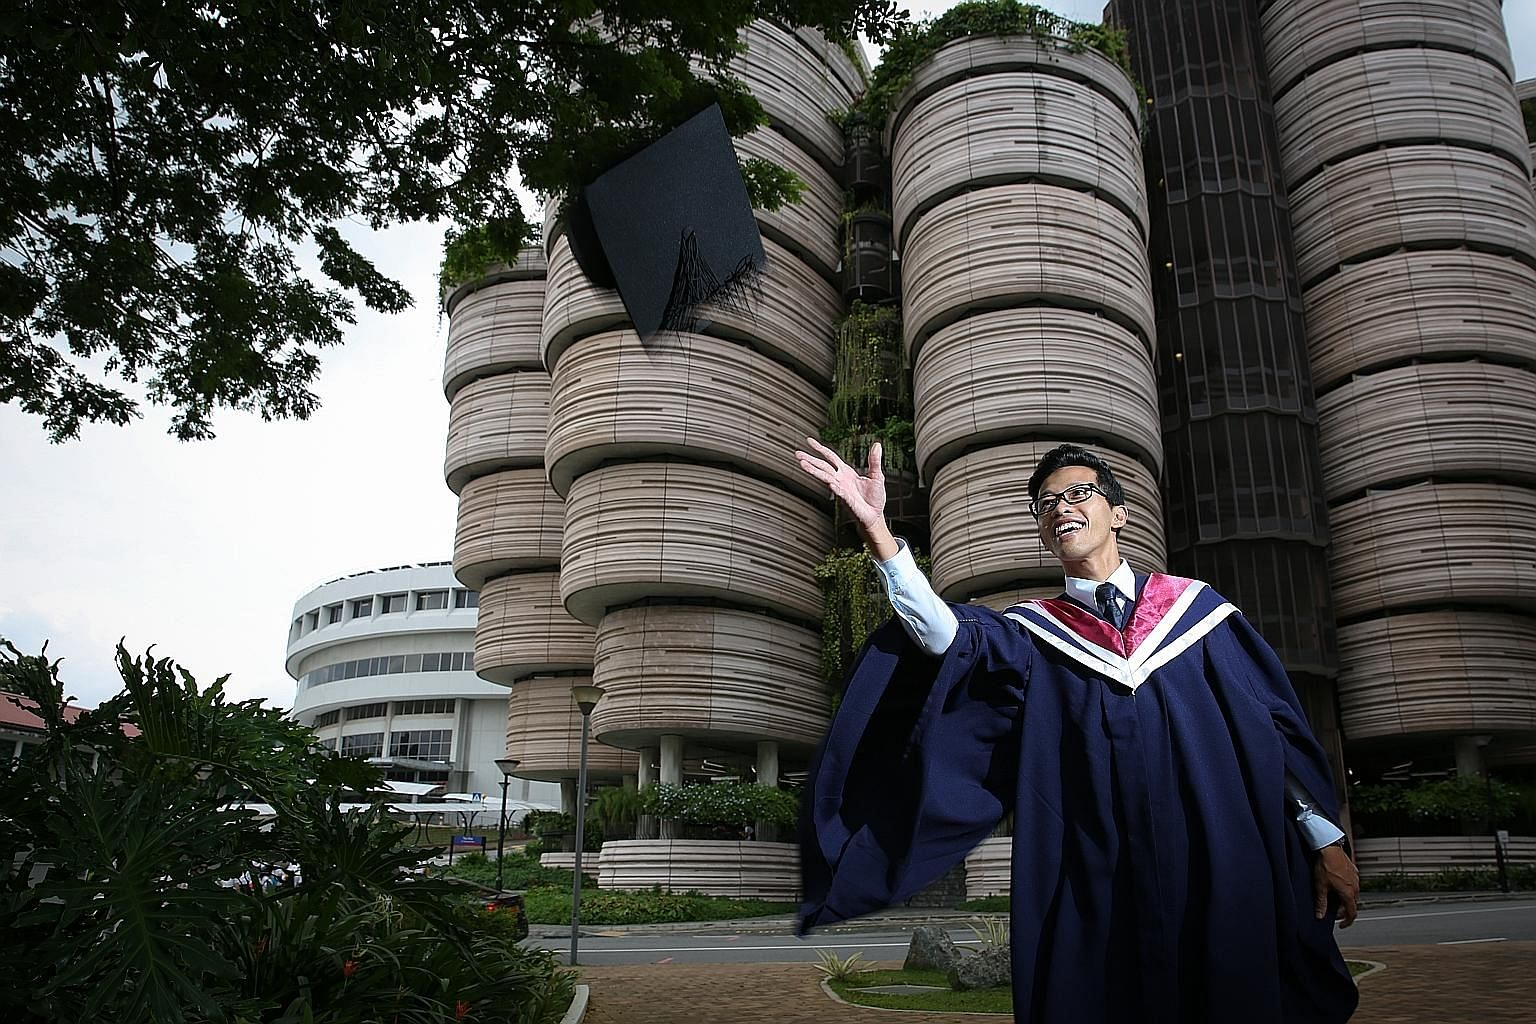 Mr Mohammad Syafiq Mohammad Suhaini, 26, is a Nanyang Technological University sociology graduate waiting to start his master's in sociology at Oxford University, after which he will take up a job as a research officer.